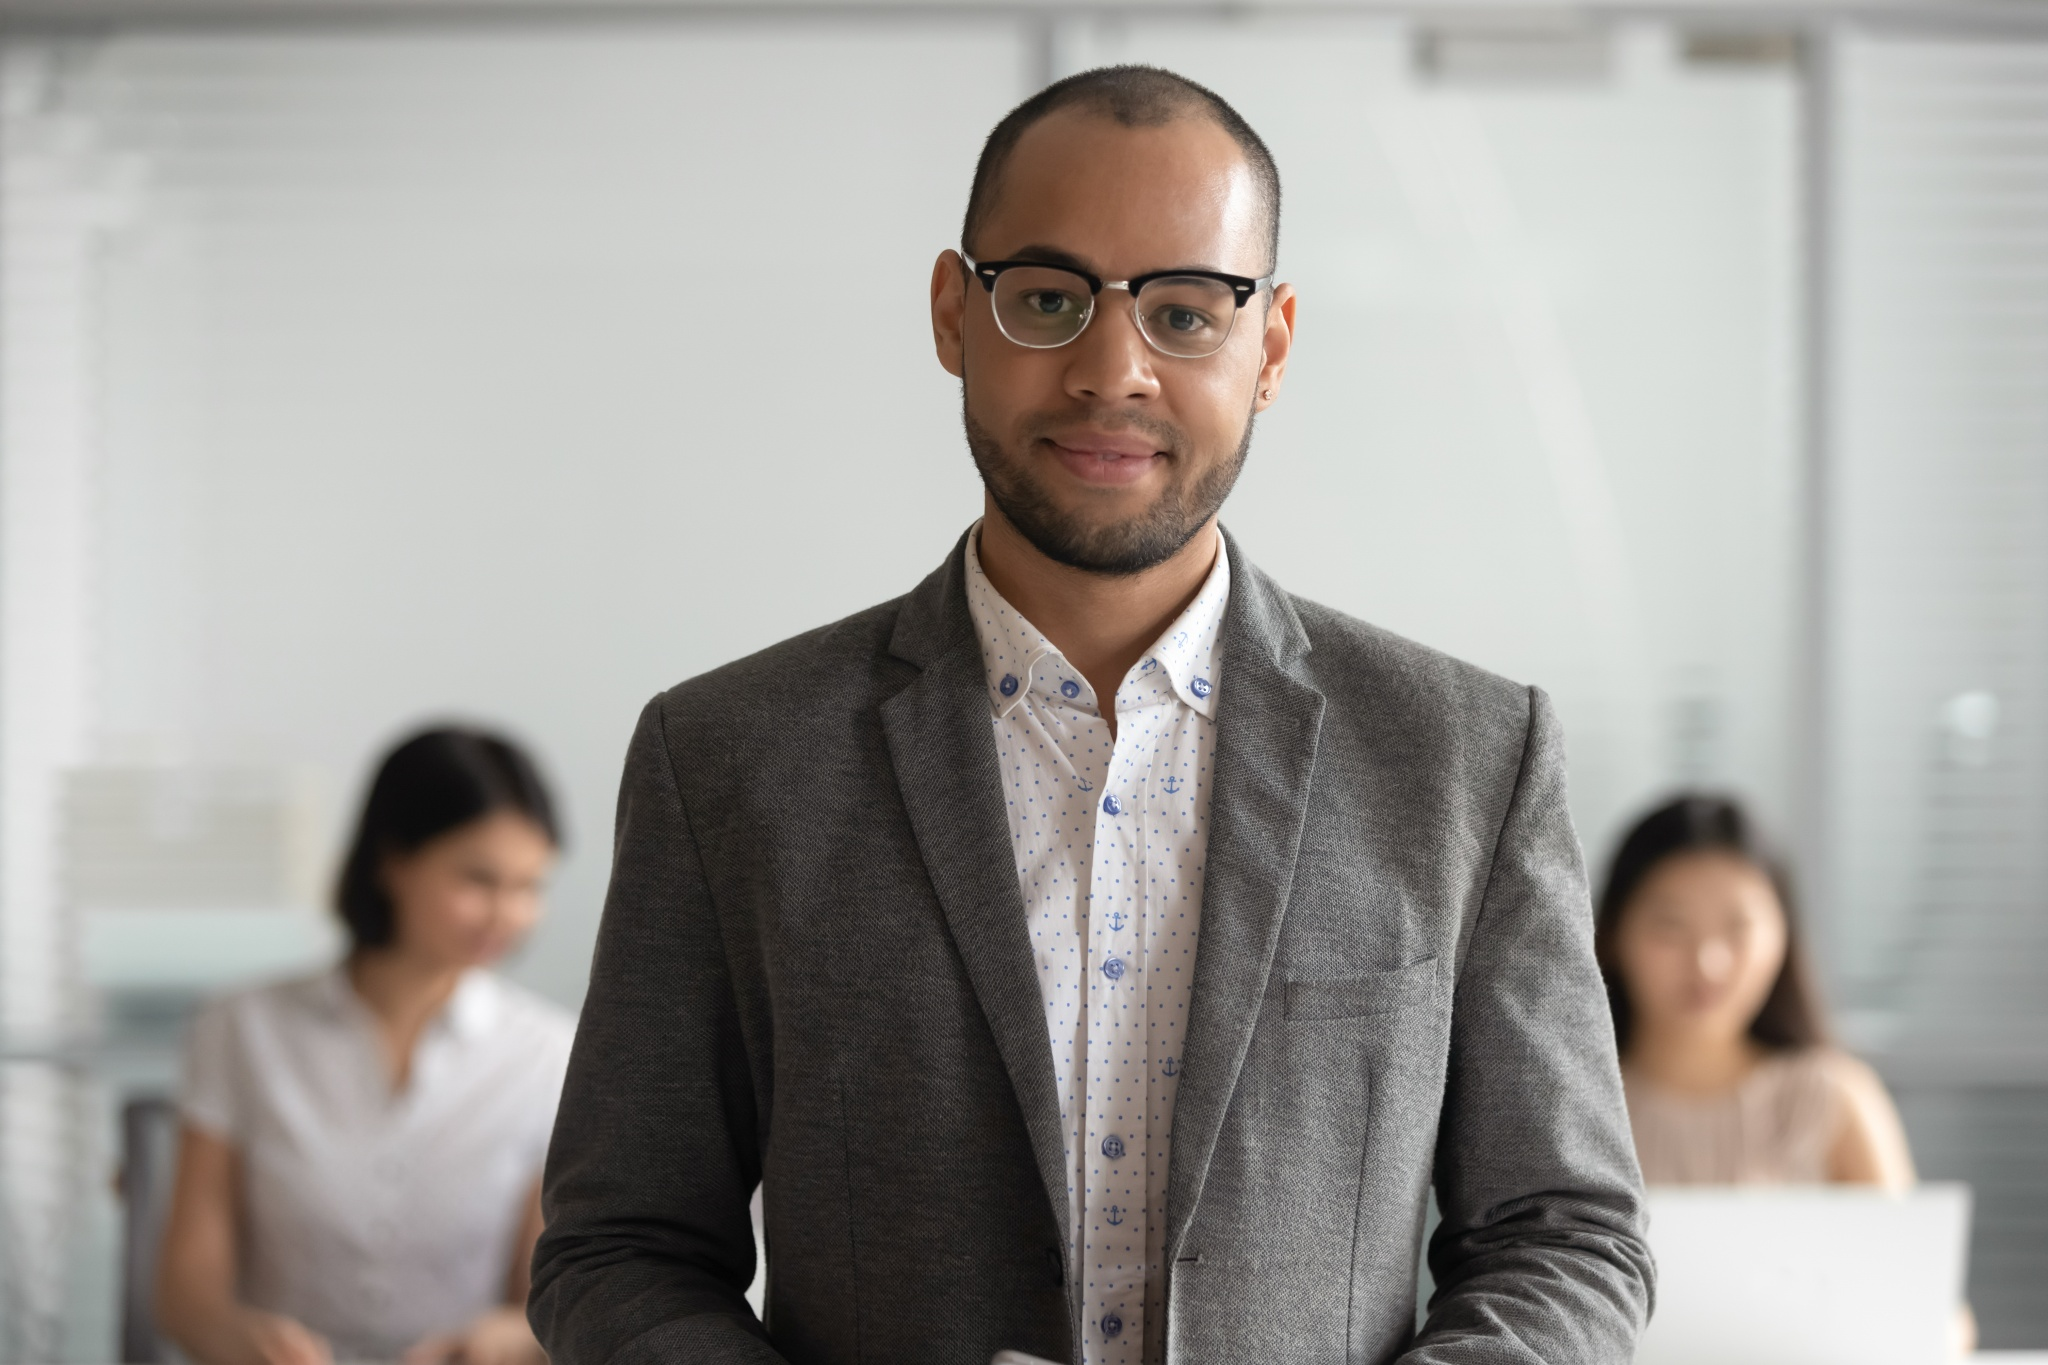 Headshot portrait of smiling biracial male employee in glasses stand forefront look at camera, happy confident businessman in spectacles and suit posing at workplace. Leadership concept